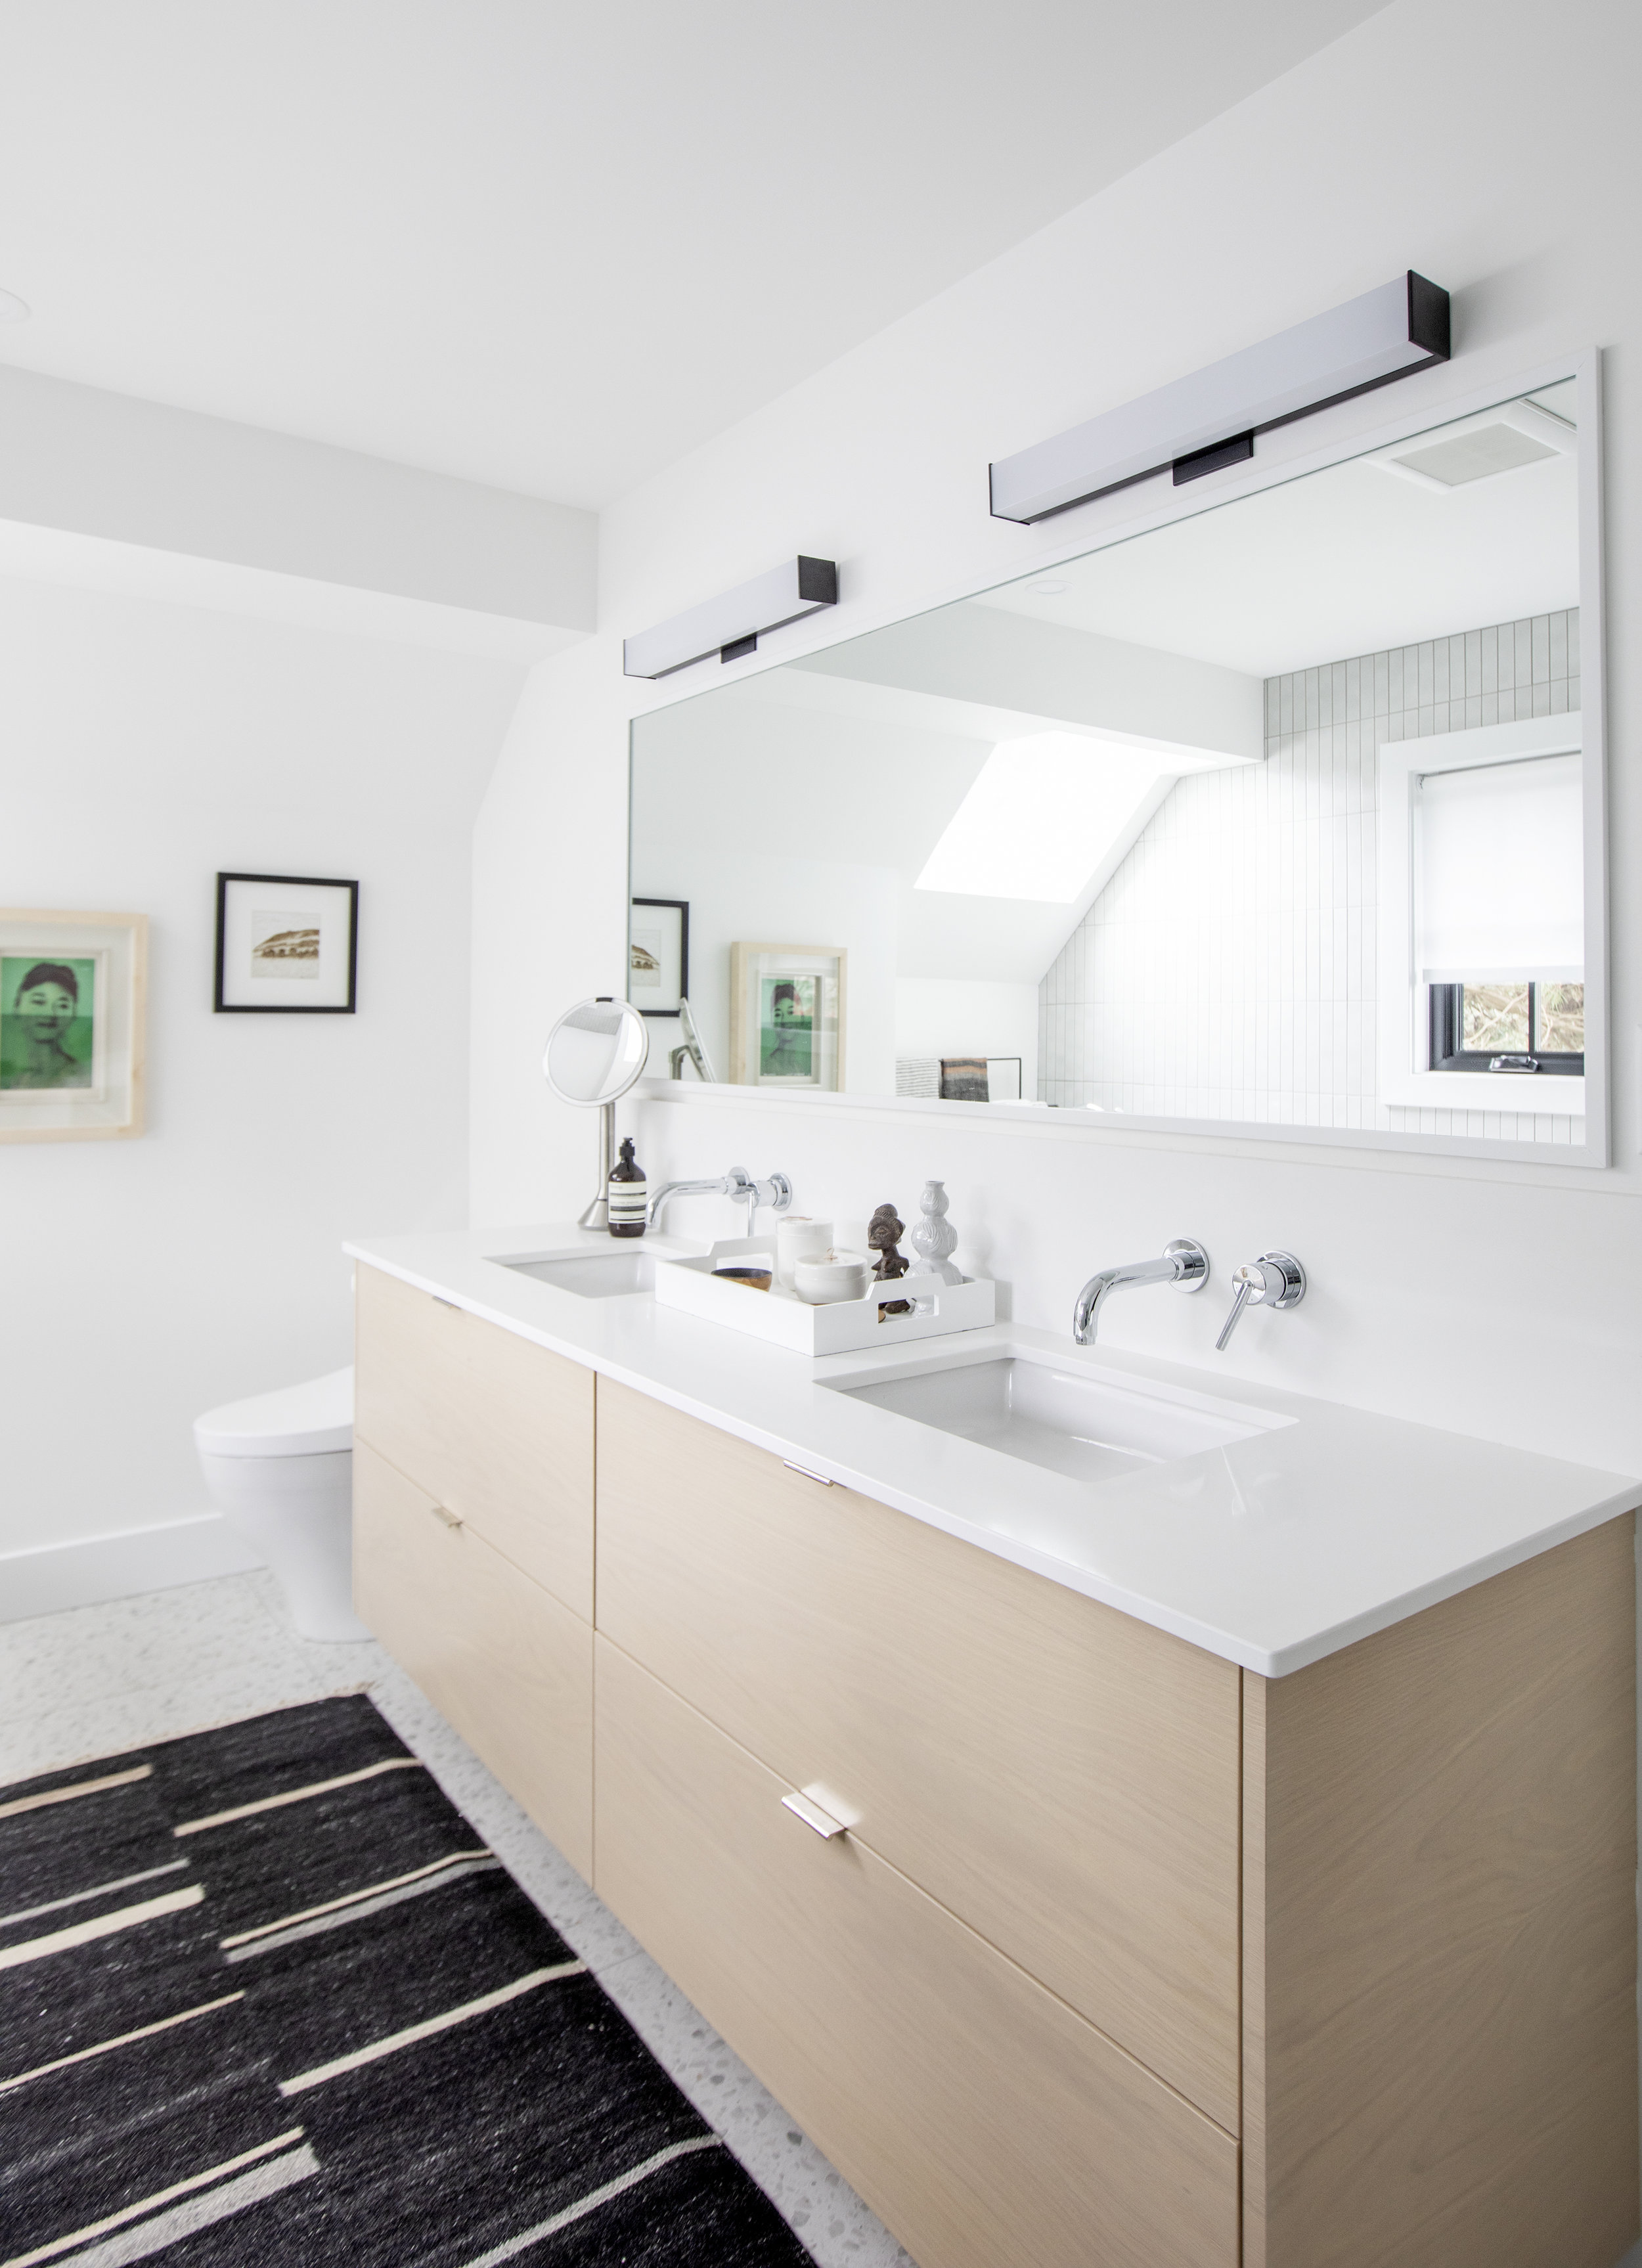 The his and hers sinks in the master bathroom sit below a large rectangular mirror in Alderfield Place